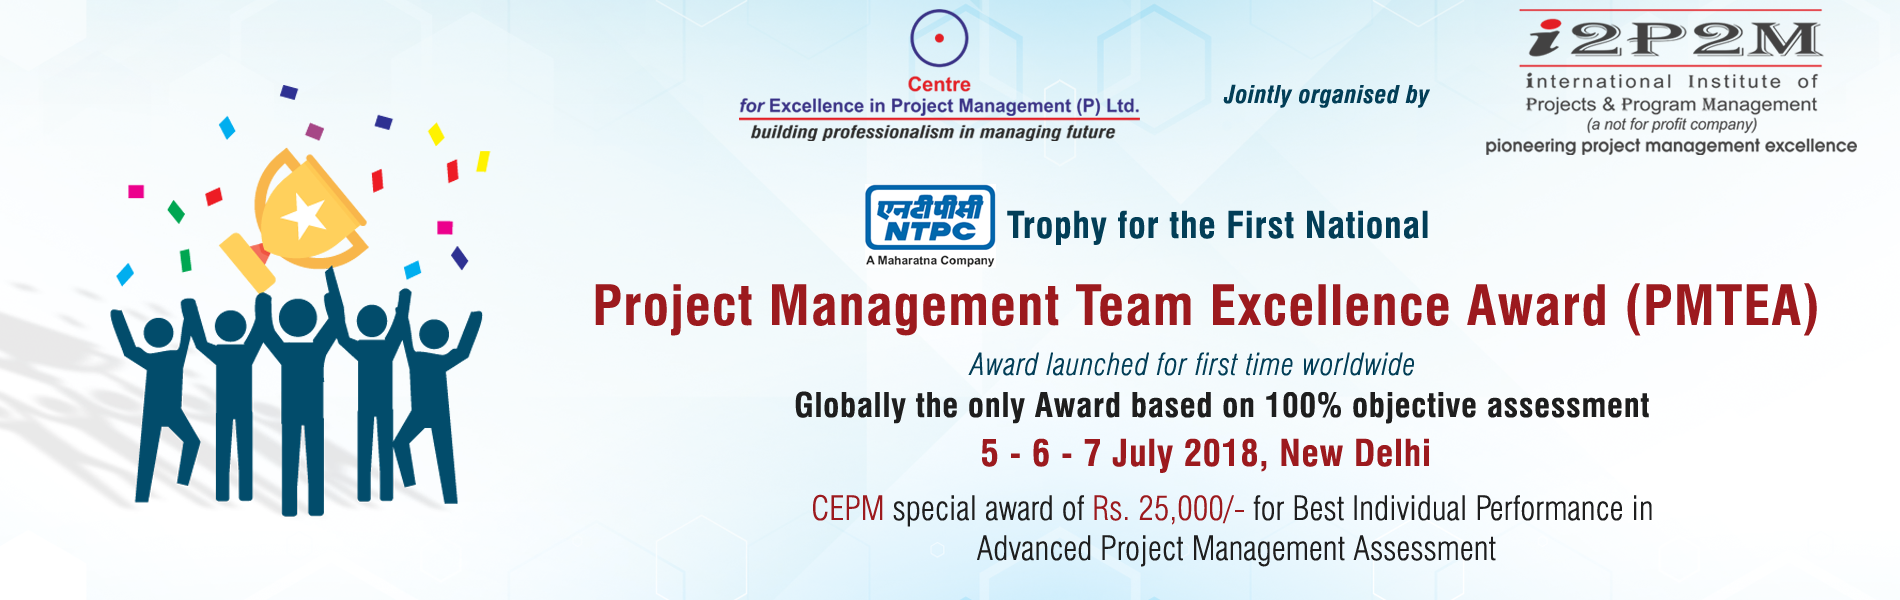 NTPC Trophy for the First National Project Management Team Excellence Award (PMTEA)